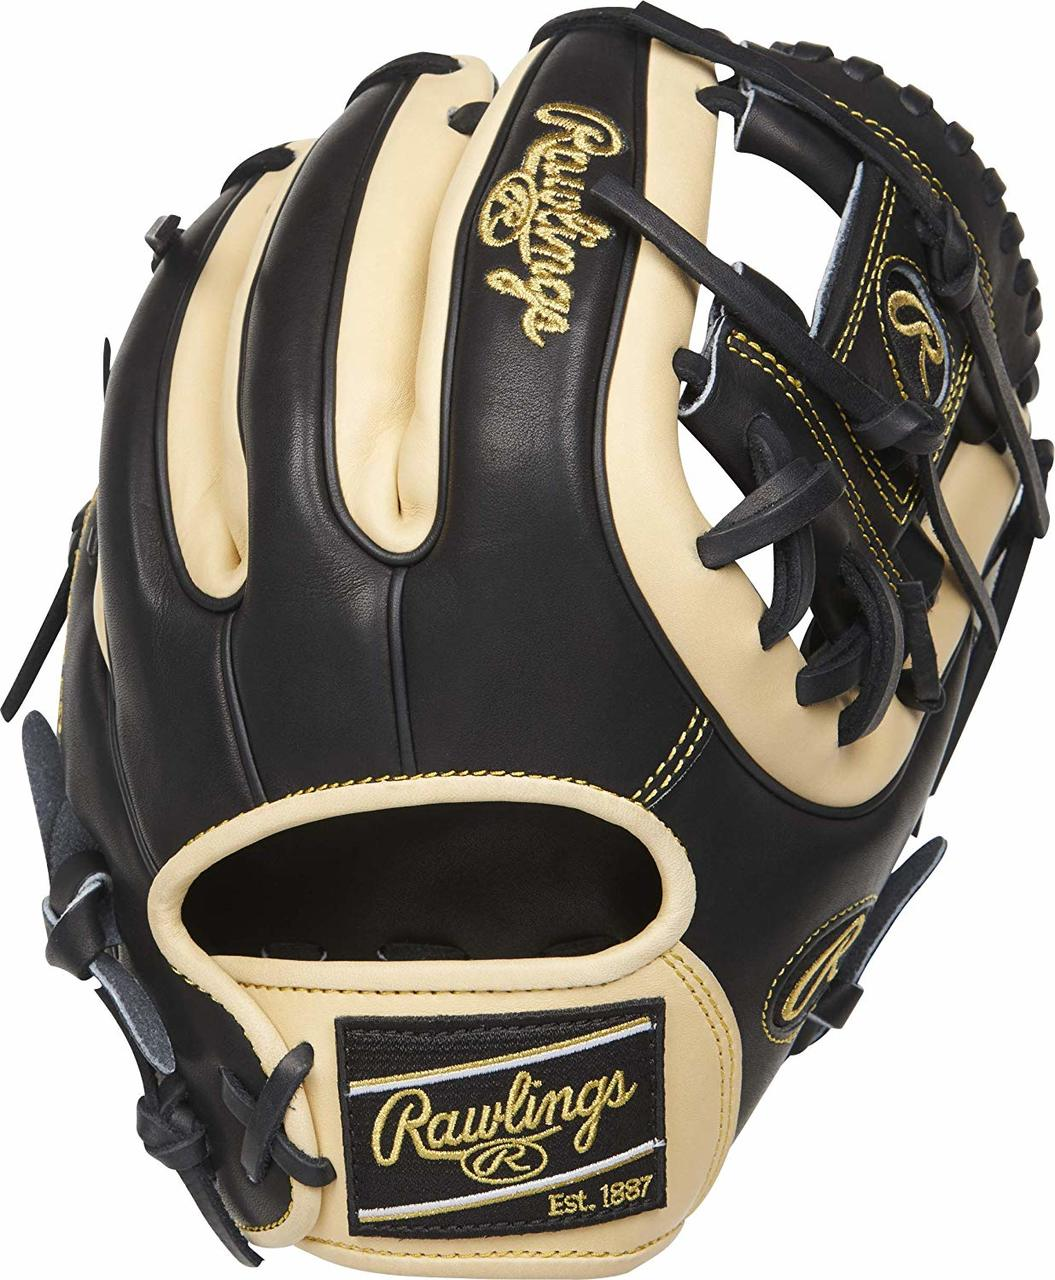 rawlings-heart-of-the-hide-pro312-2bc-baseball-glove-11-25-i-web-right-hand-throw PRO312--2BC-RightHandThrow Rawlings 083321598838 This 11. 25-inch Heart of the Hide infield glove provides balanced